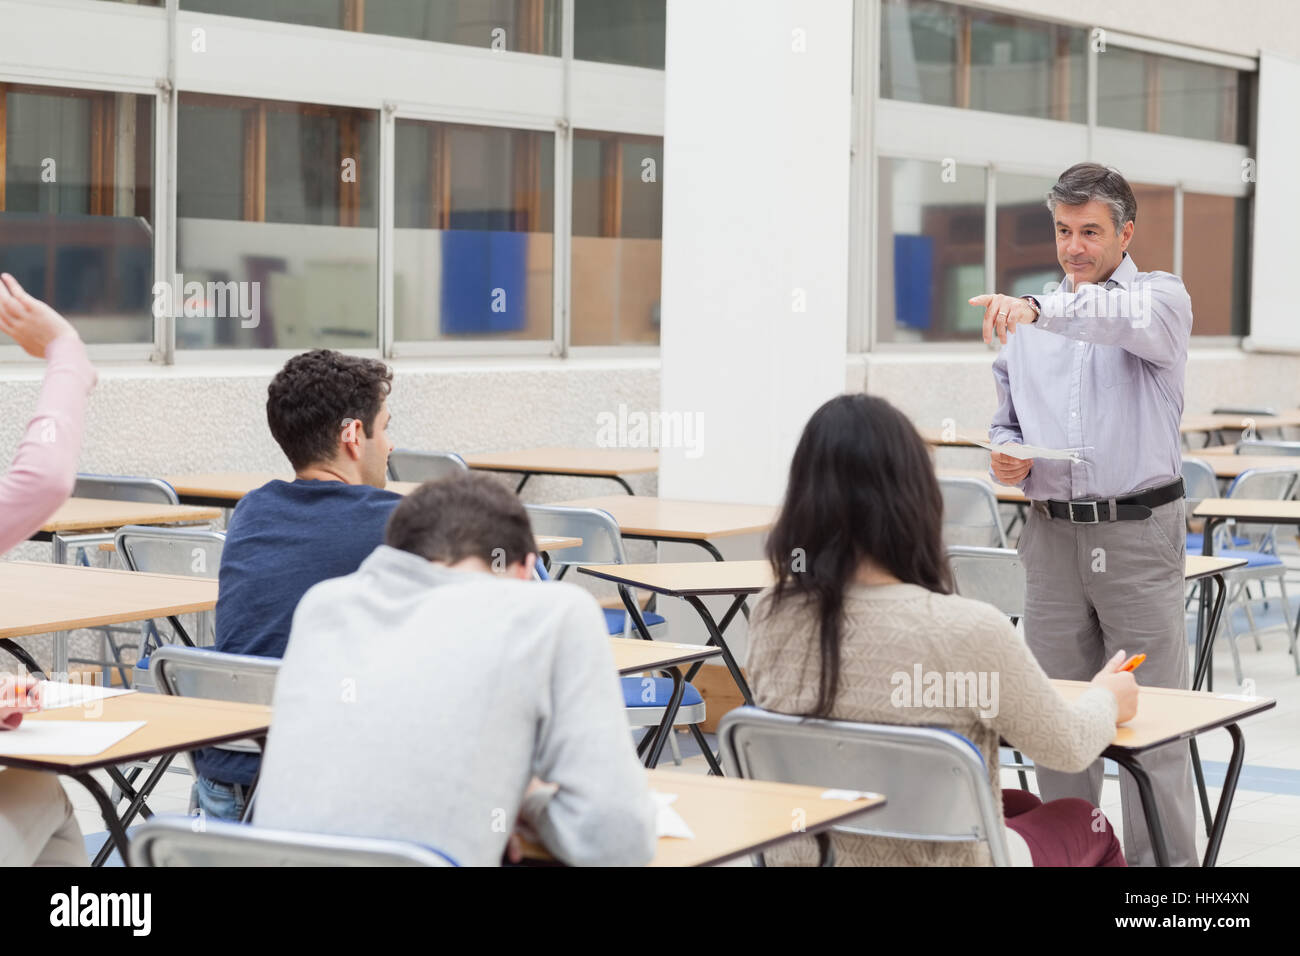 Teacher pointing at student asking question in classroom in college - Stock Image